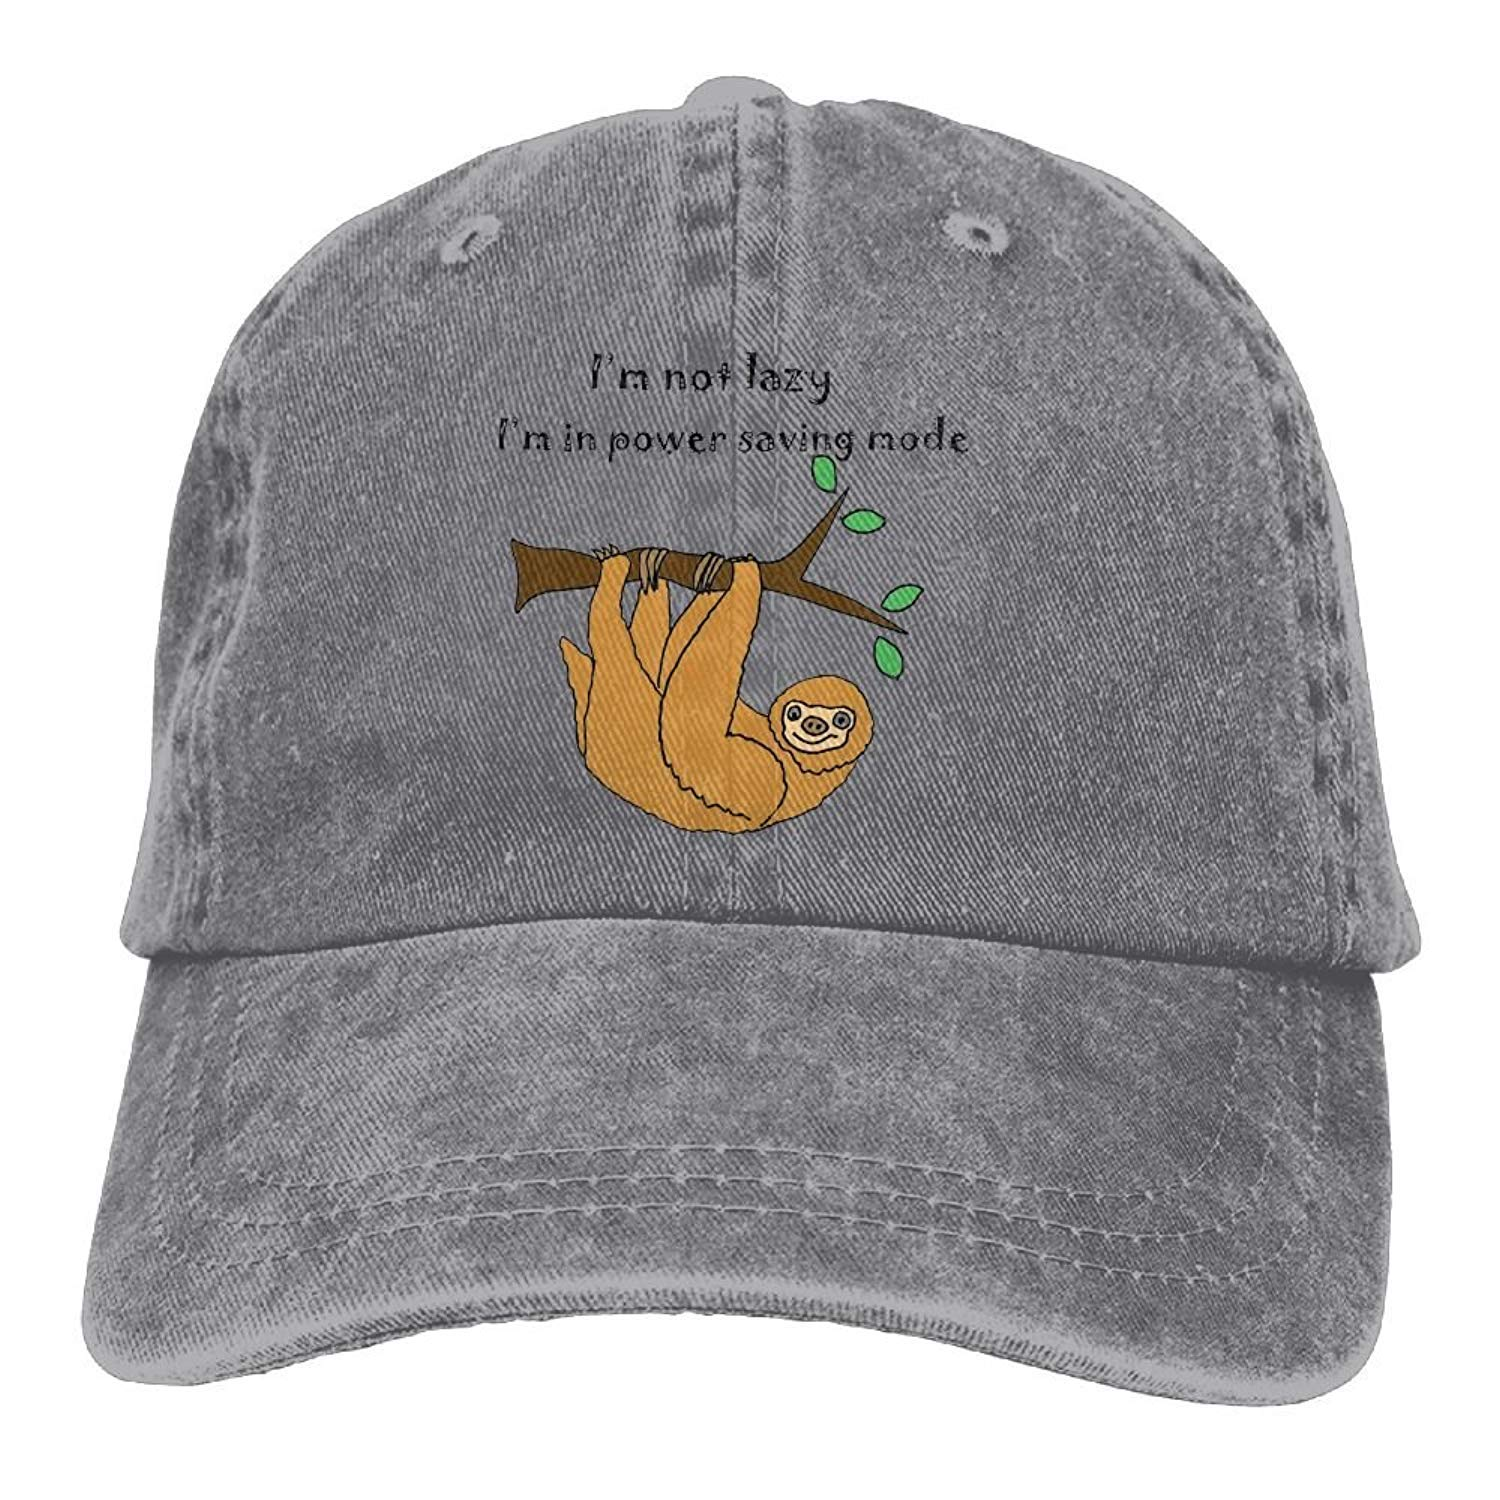 JTRVW Cowboy Hats Lazy Sloth Unisex Adjustable Baseball Caps Denim Hats Cowboy Sport Outdoor